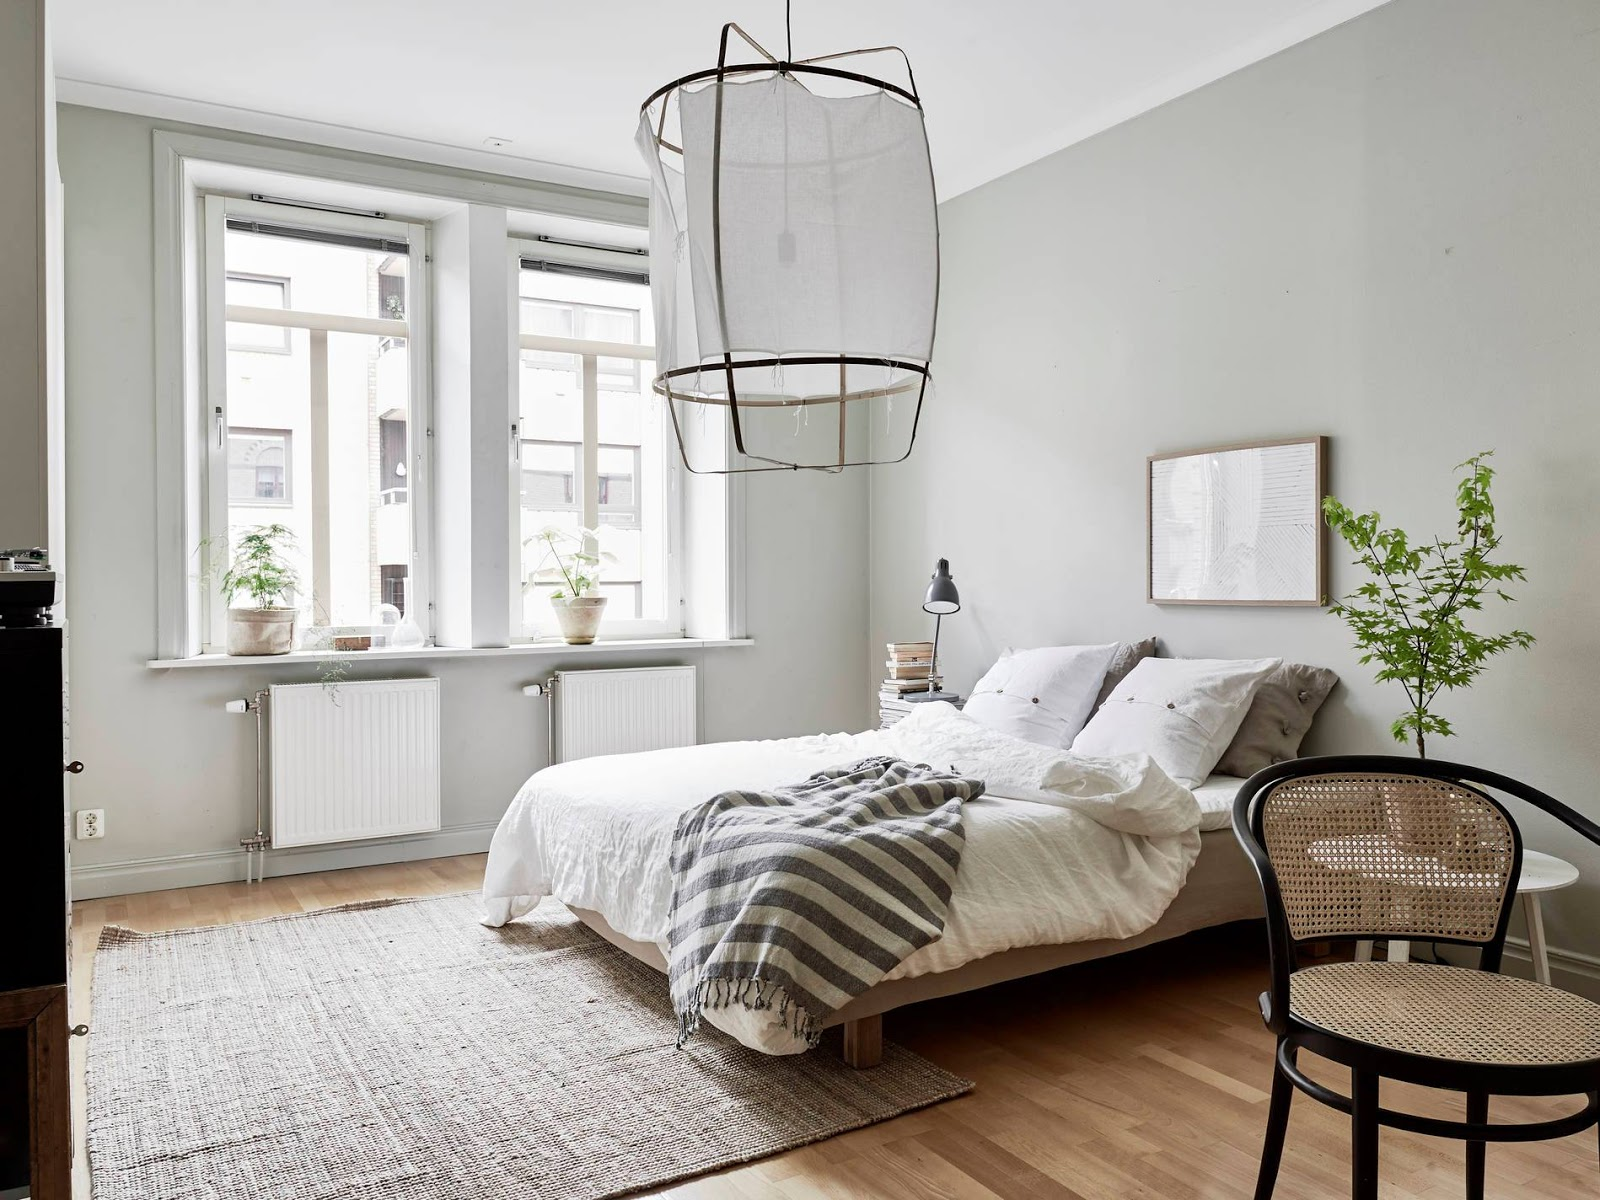 Two bedroom swedish apartment - Deco interieur nature ...